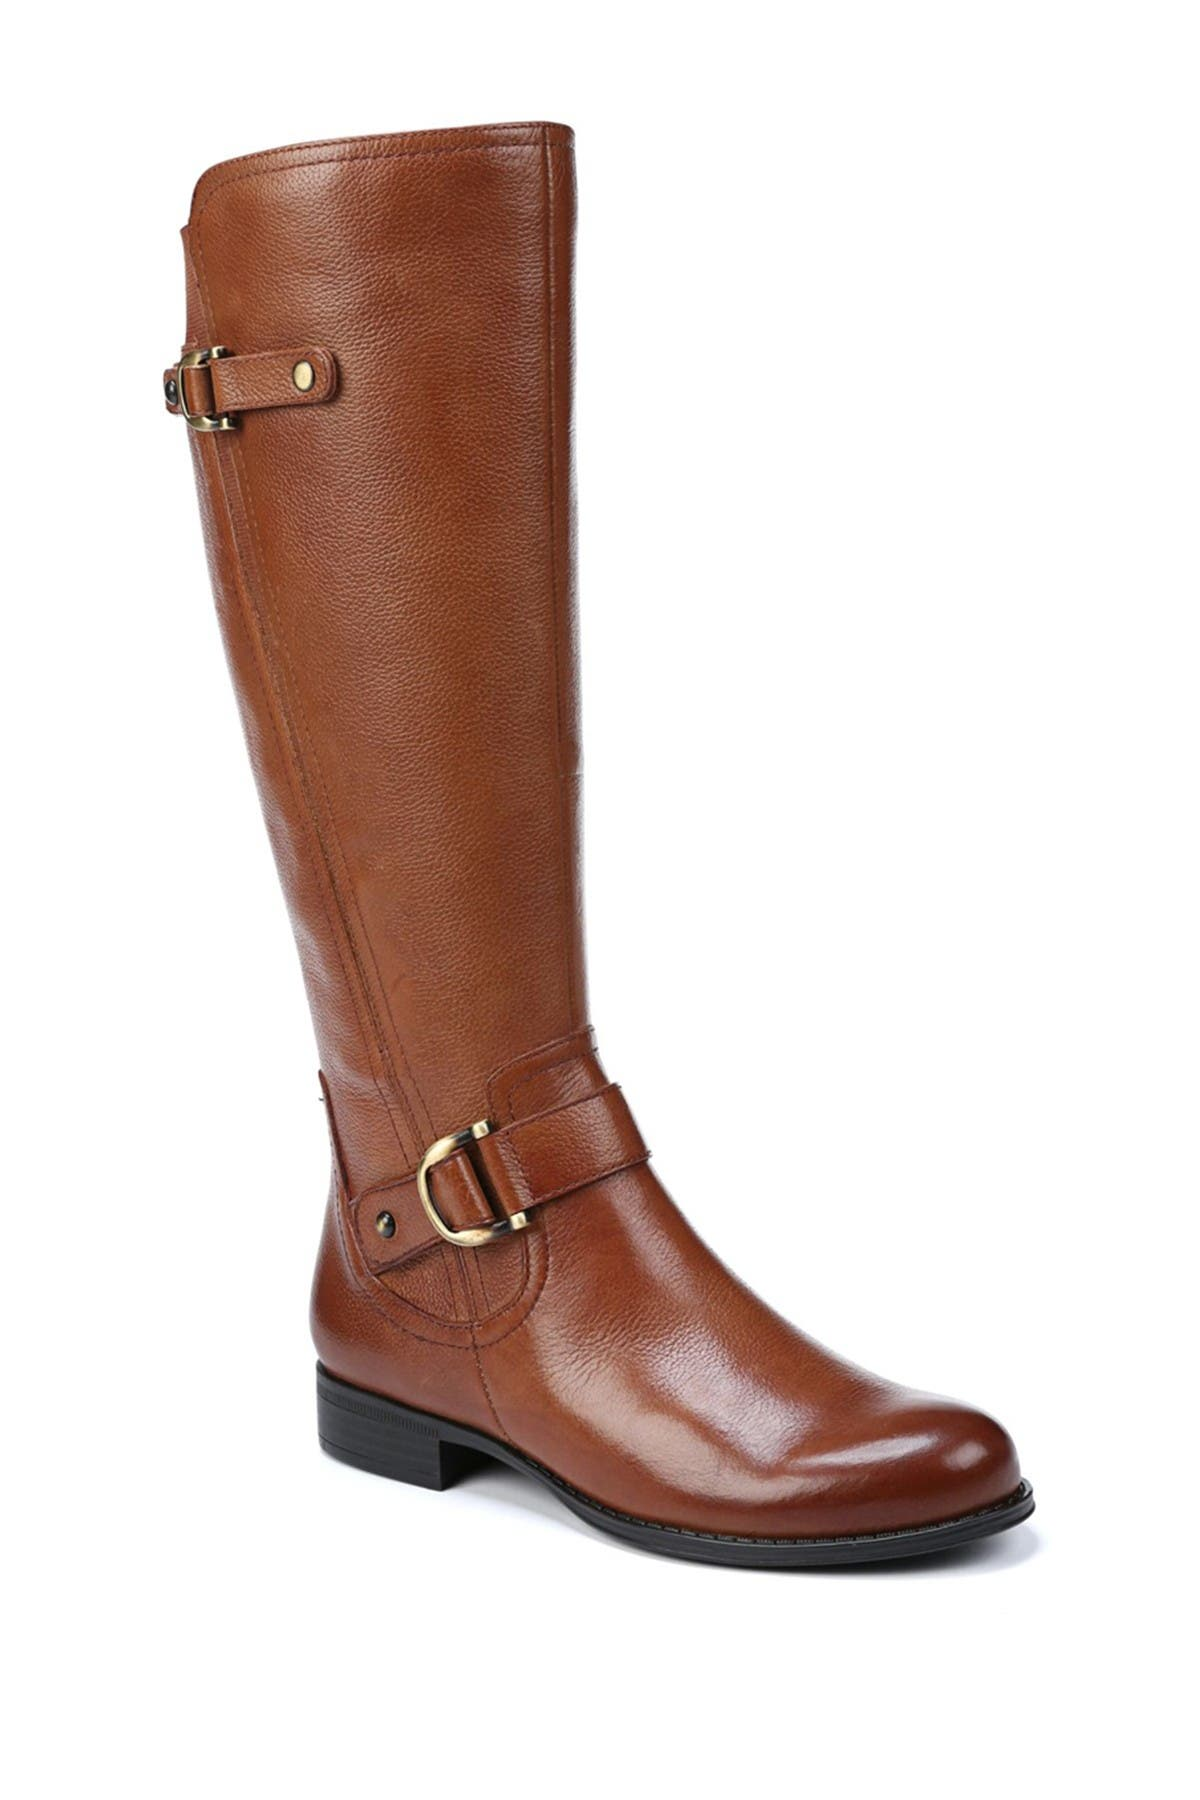 Image of Naturalizer Jillian Knee High Leather Boot - Wide Calf & Wide Width Available